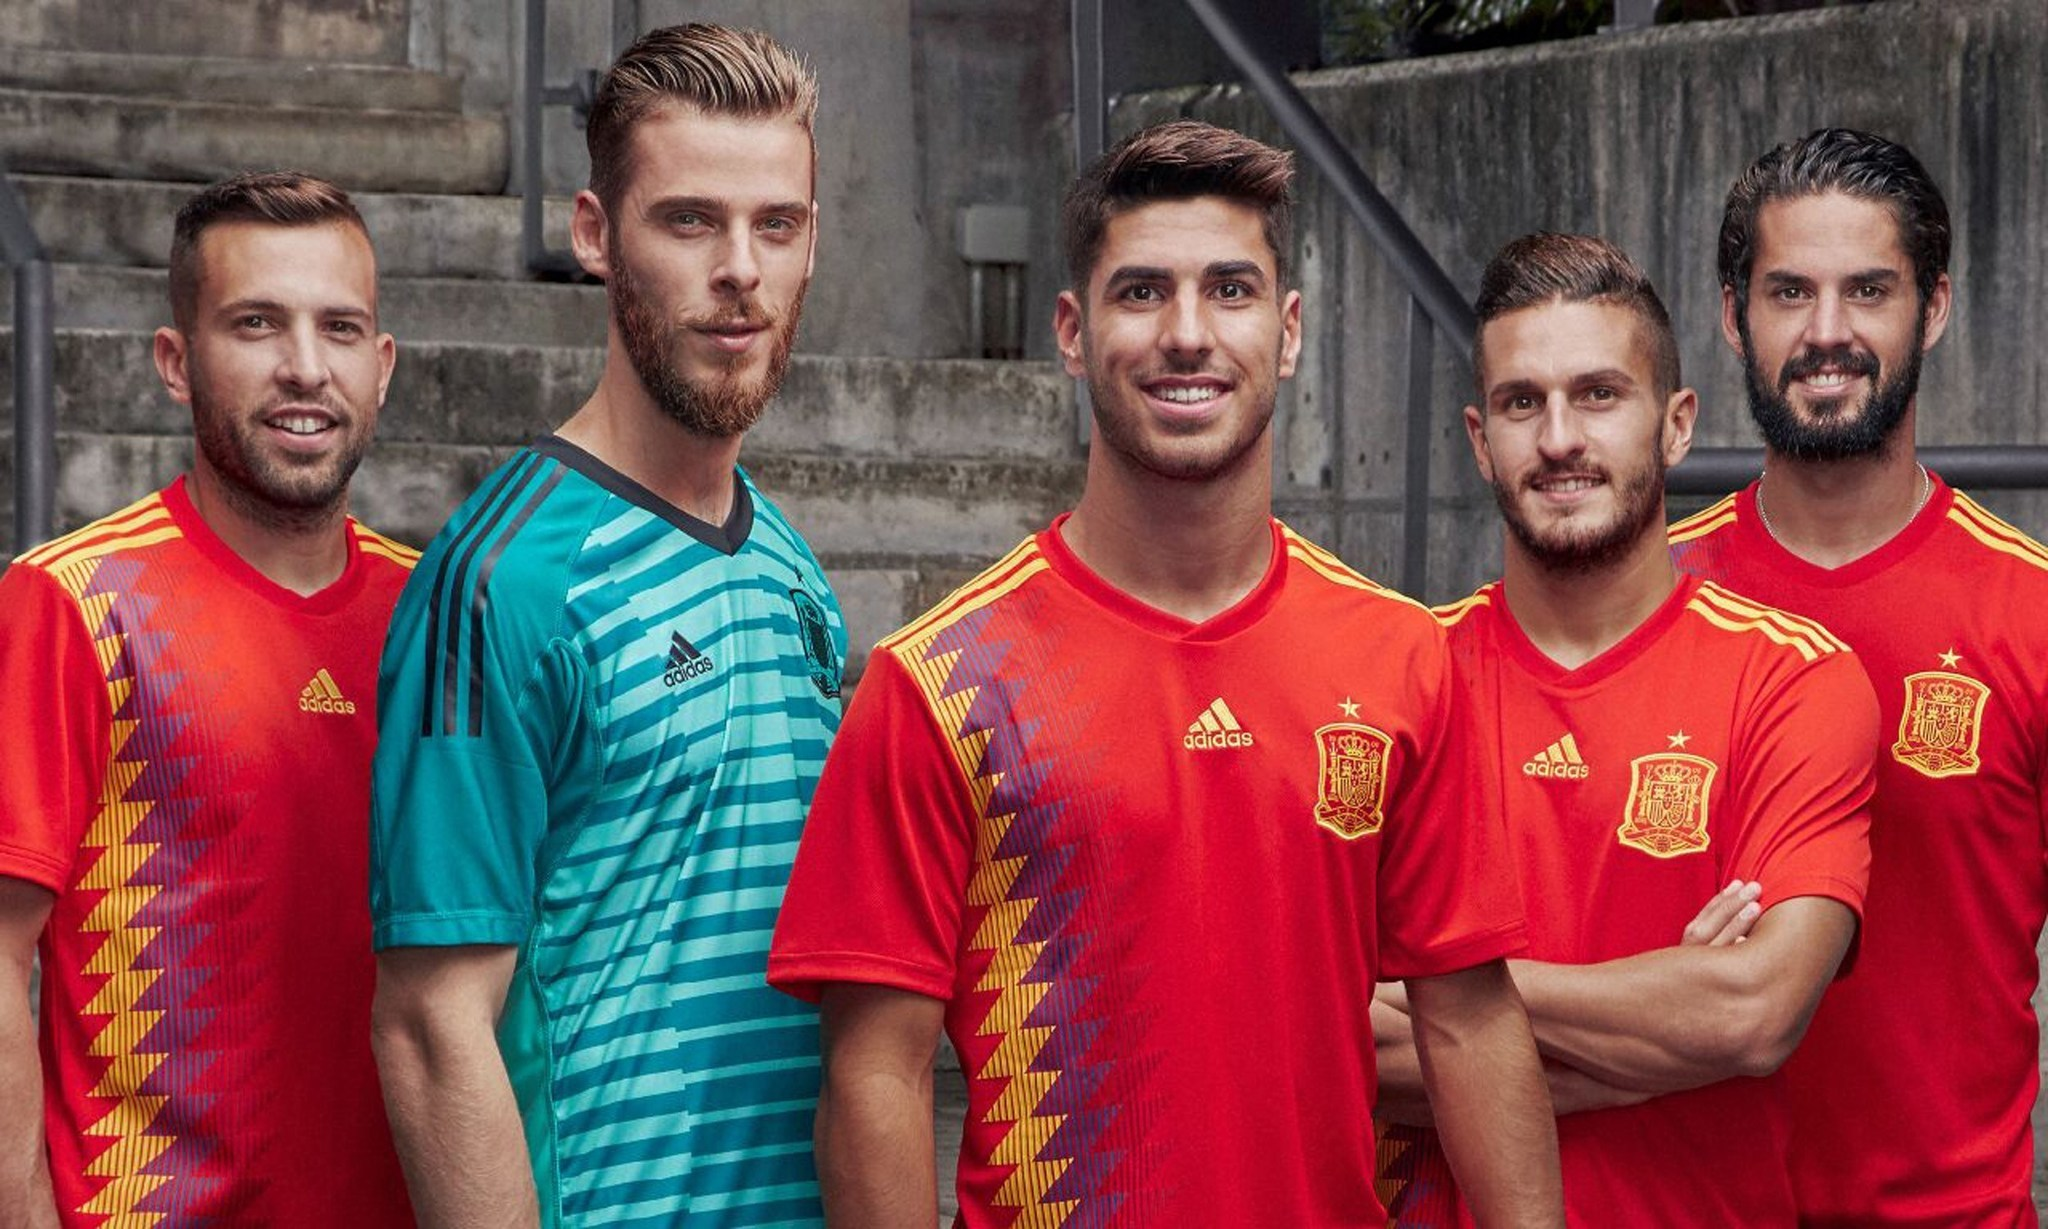 9167605b0d1 Spain's World Cup jersey sparks controversy - Chicago Tribune